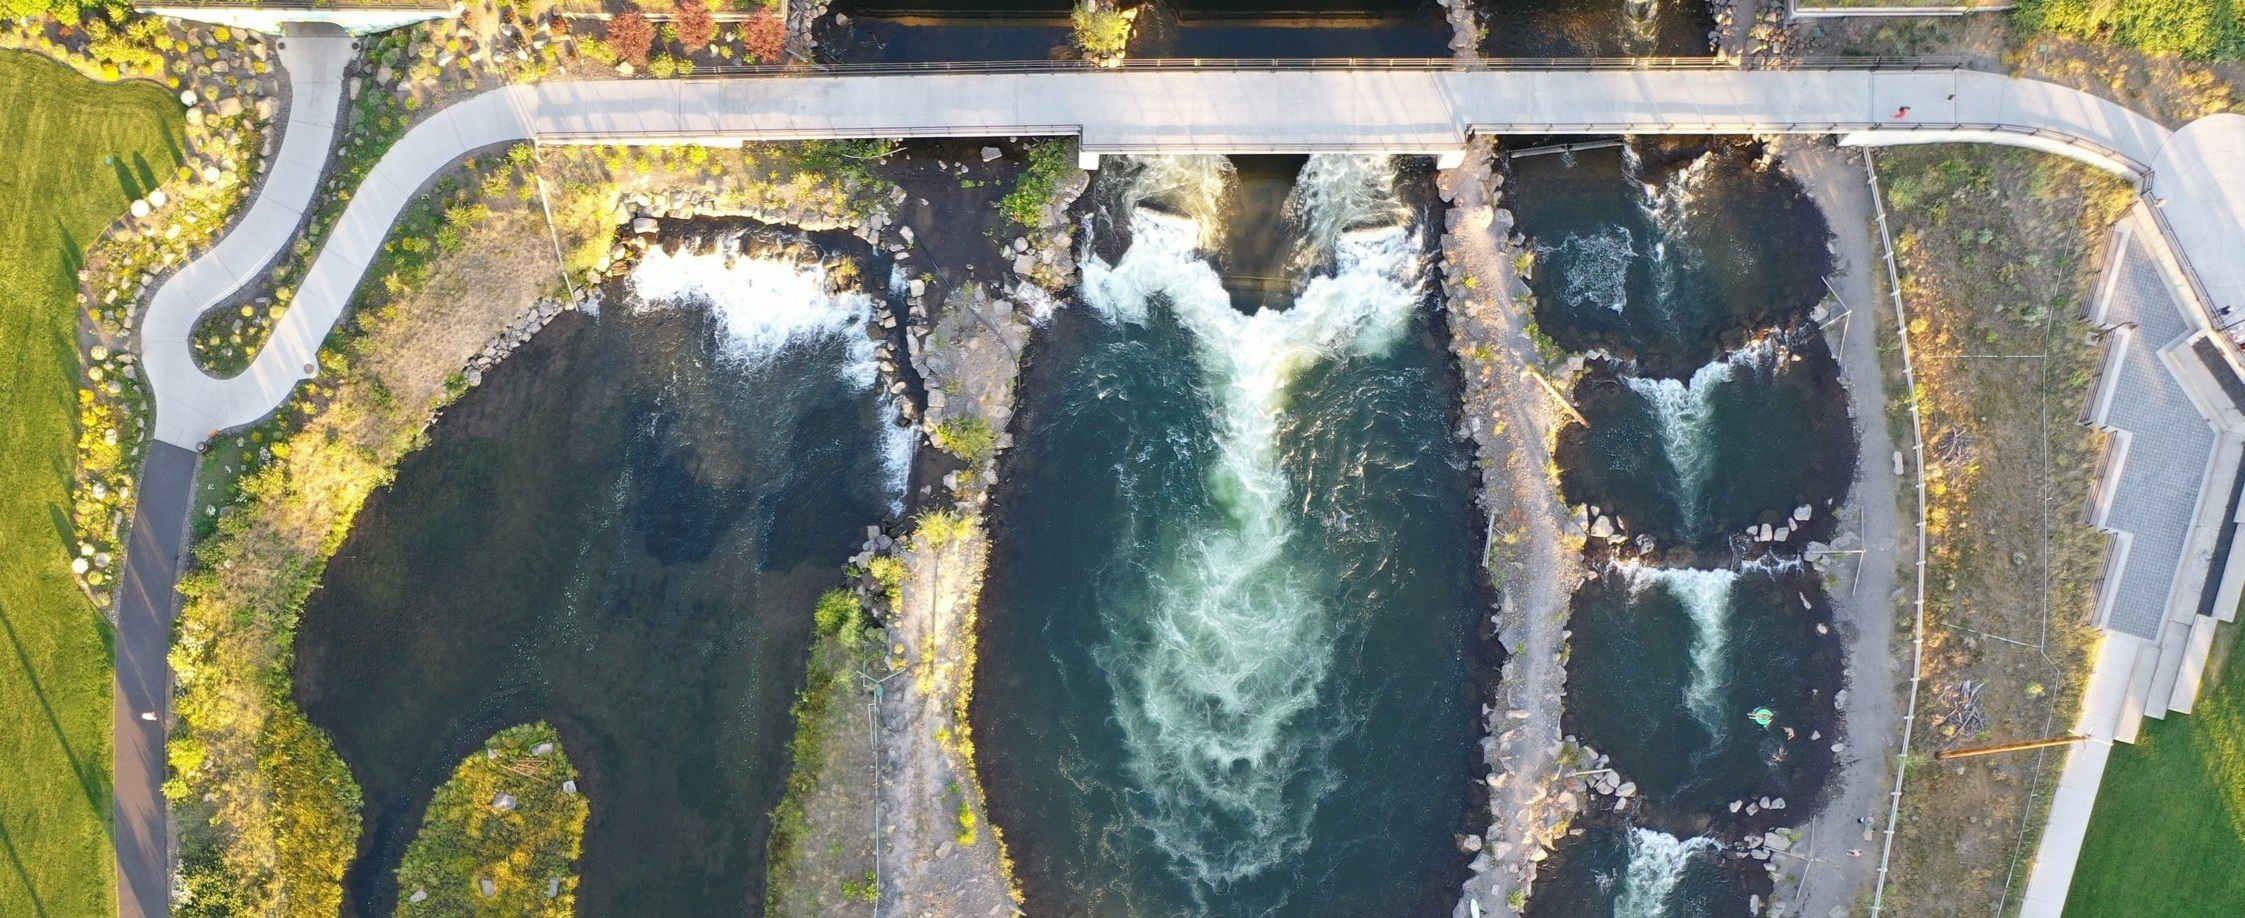 Bend_Whitewater_Park_River_Recreation.jpg